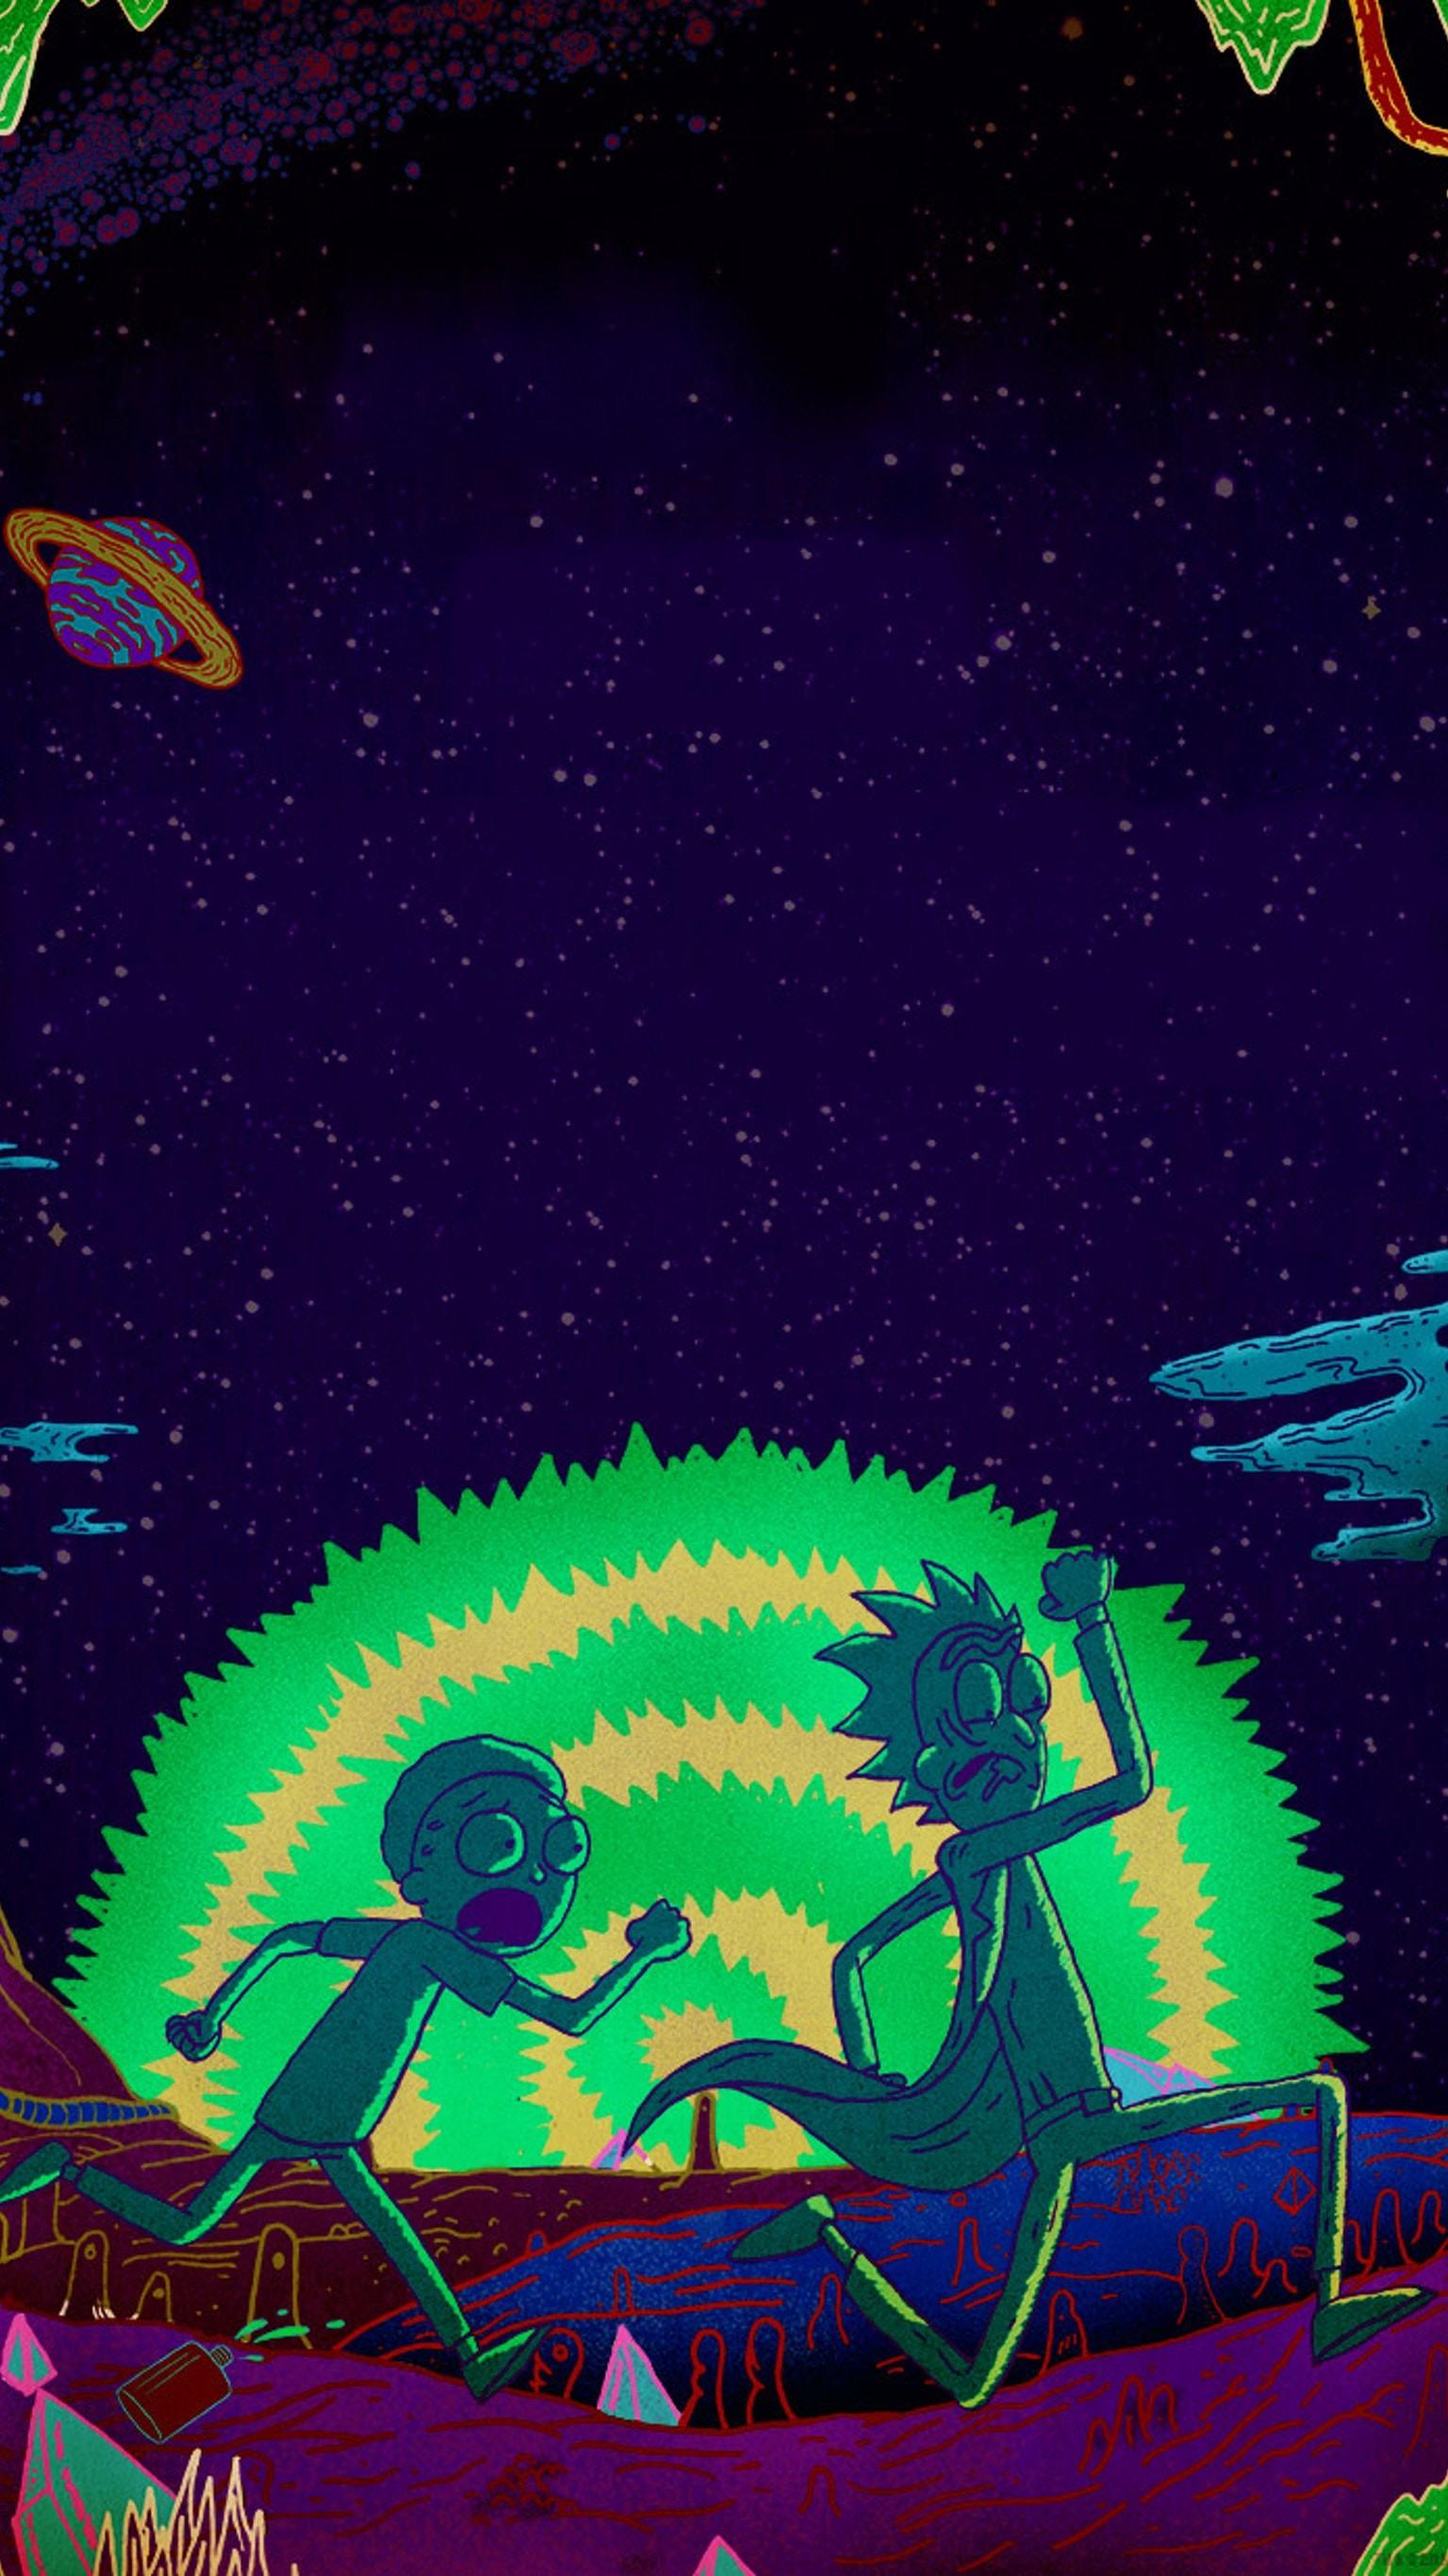 Trippy Rick And Morty Wallpapers - Wallpaper Cave